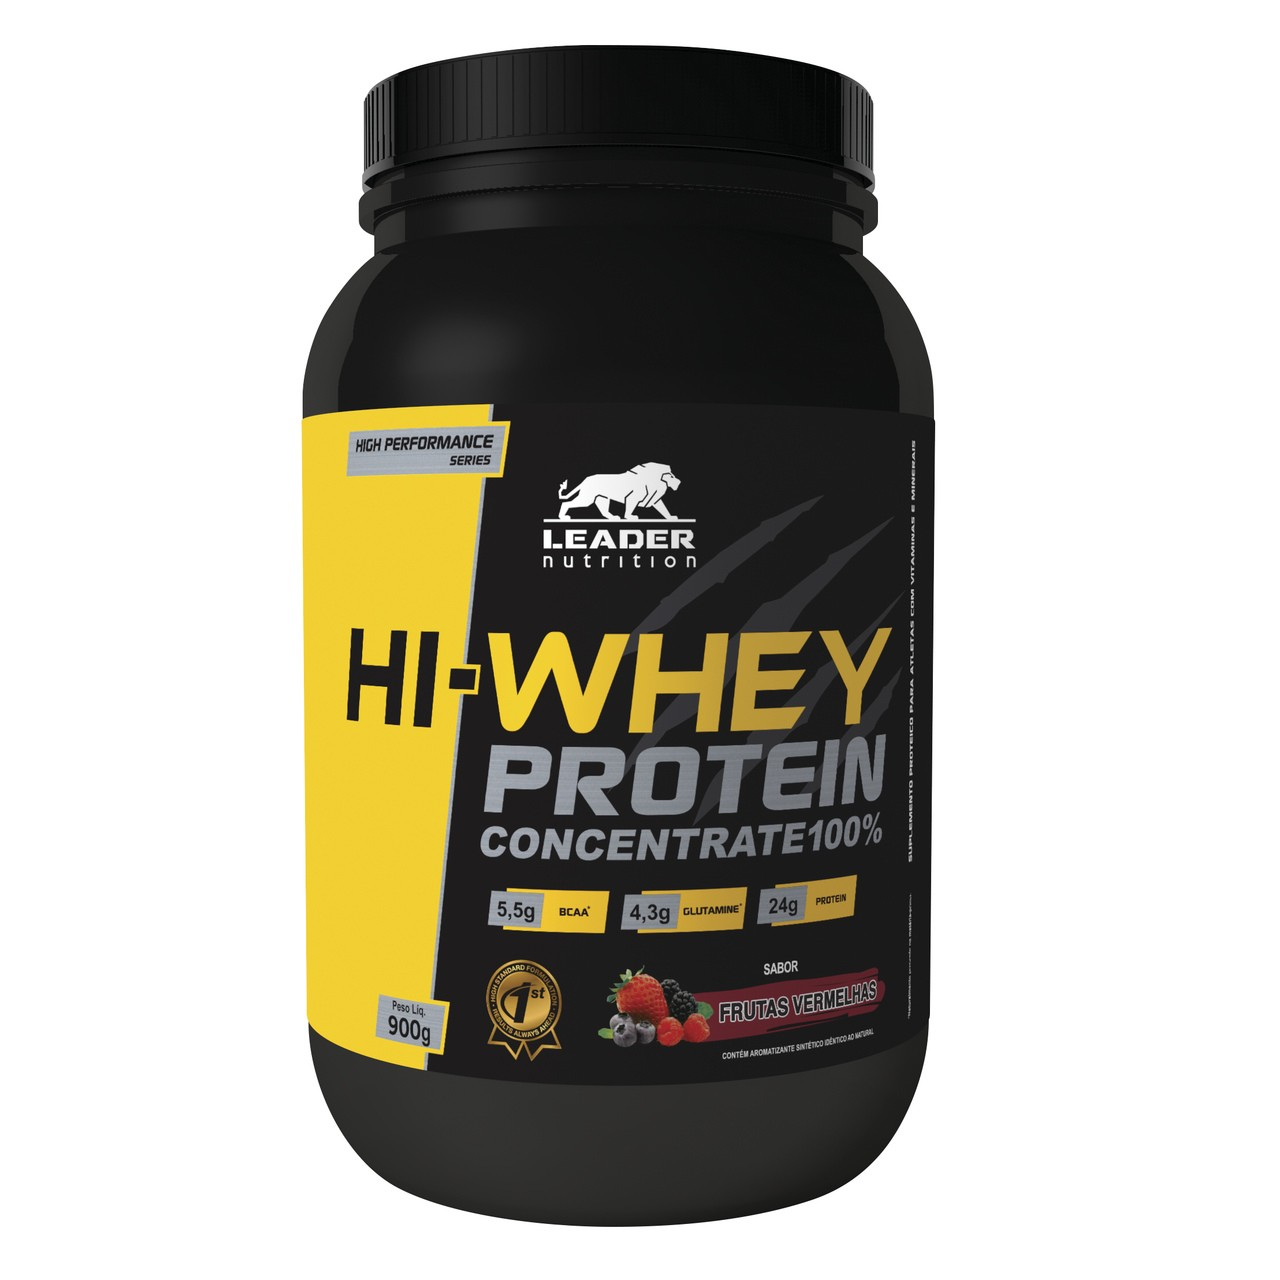 Hi-Whey Protein 100 % Concentrate (900g) - Leader Nutrition